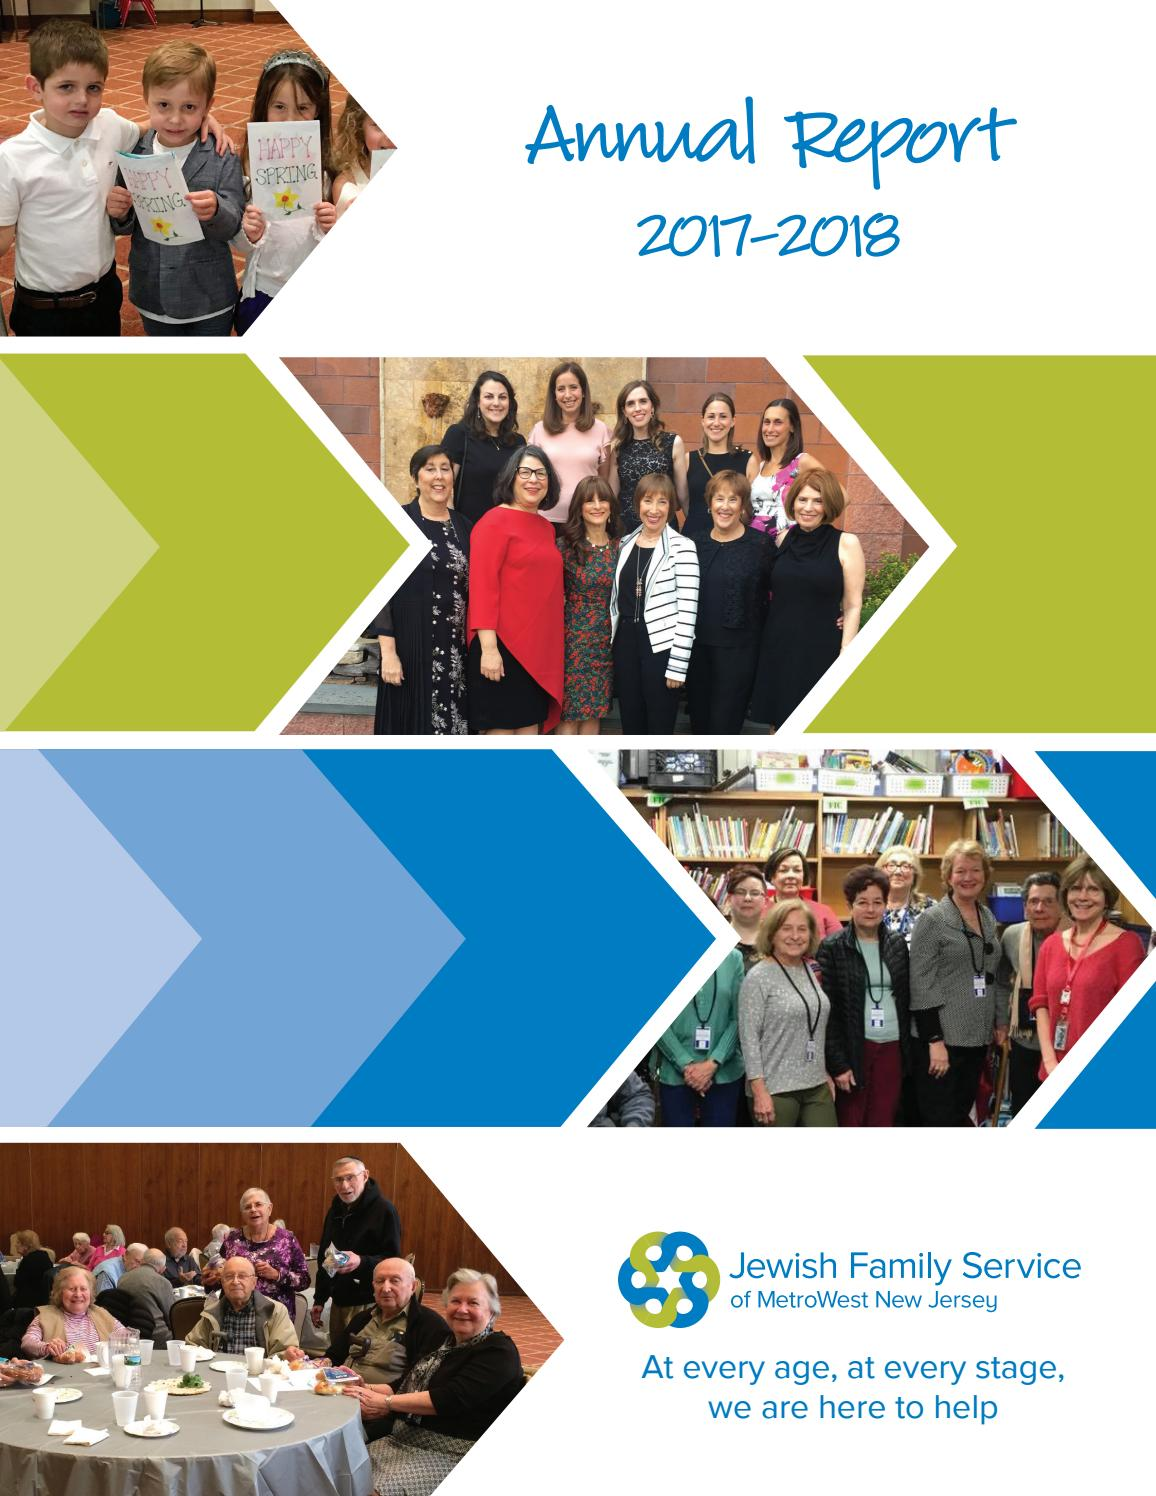 Jewish Family Service Of Metrowest Nj Annual Report 2017 2018 By Jewish Family Service Metrowest Issuu